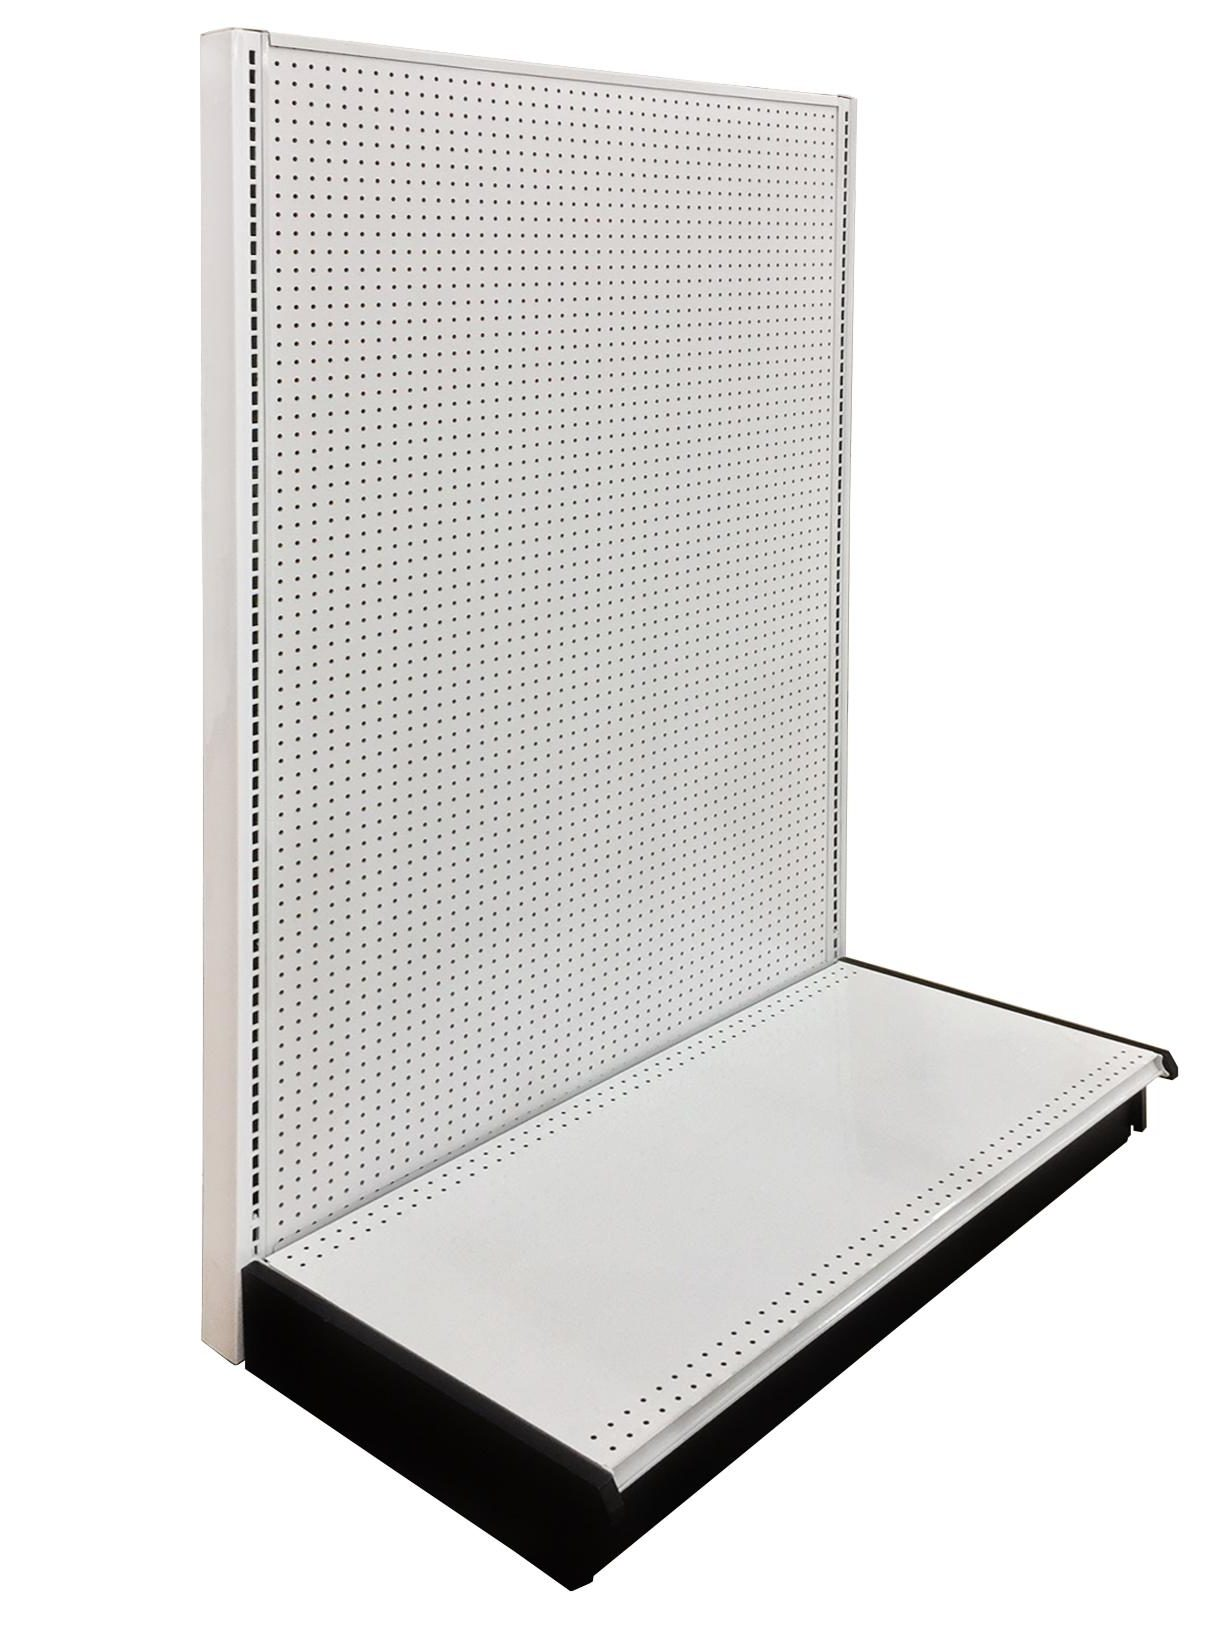 Wall Unit Starter 48 Length 54 Height 22 Base Depth Pegboard Backing White